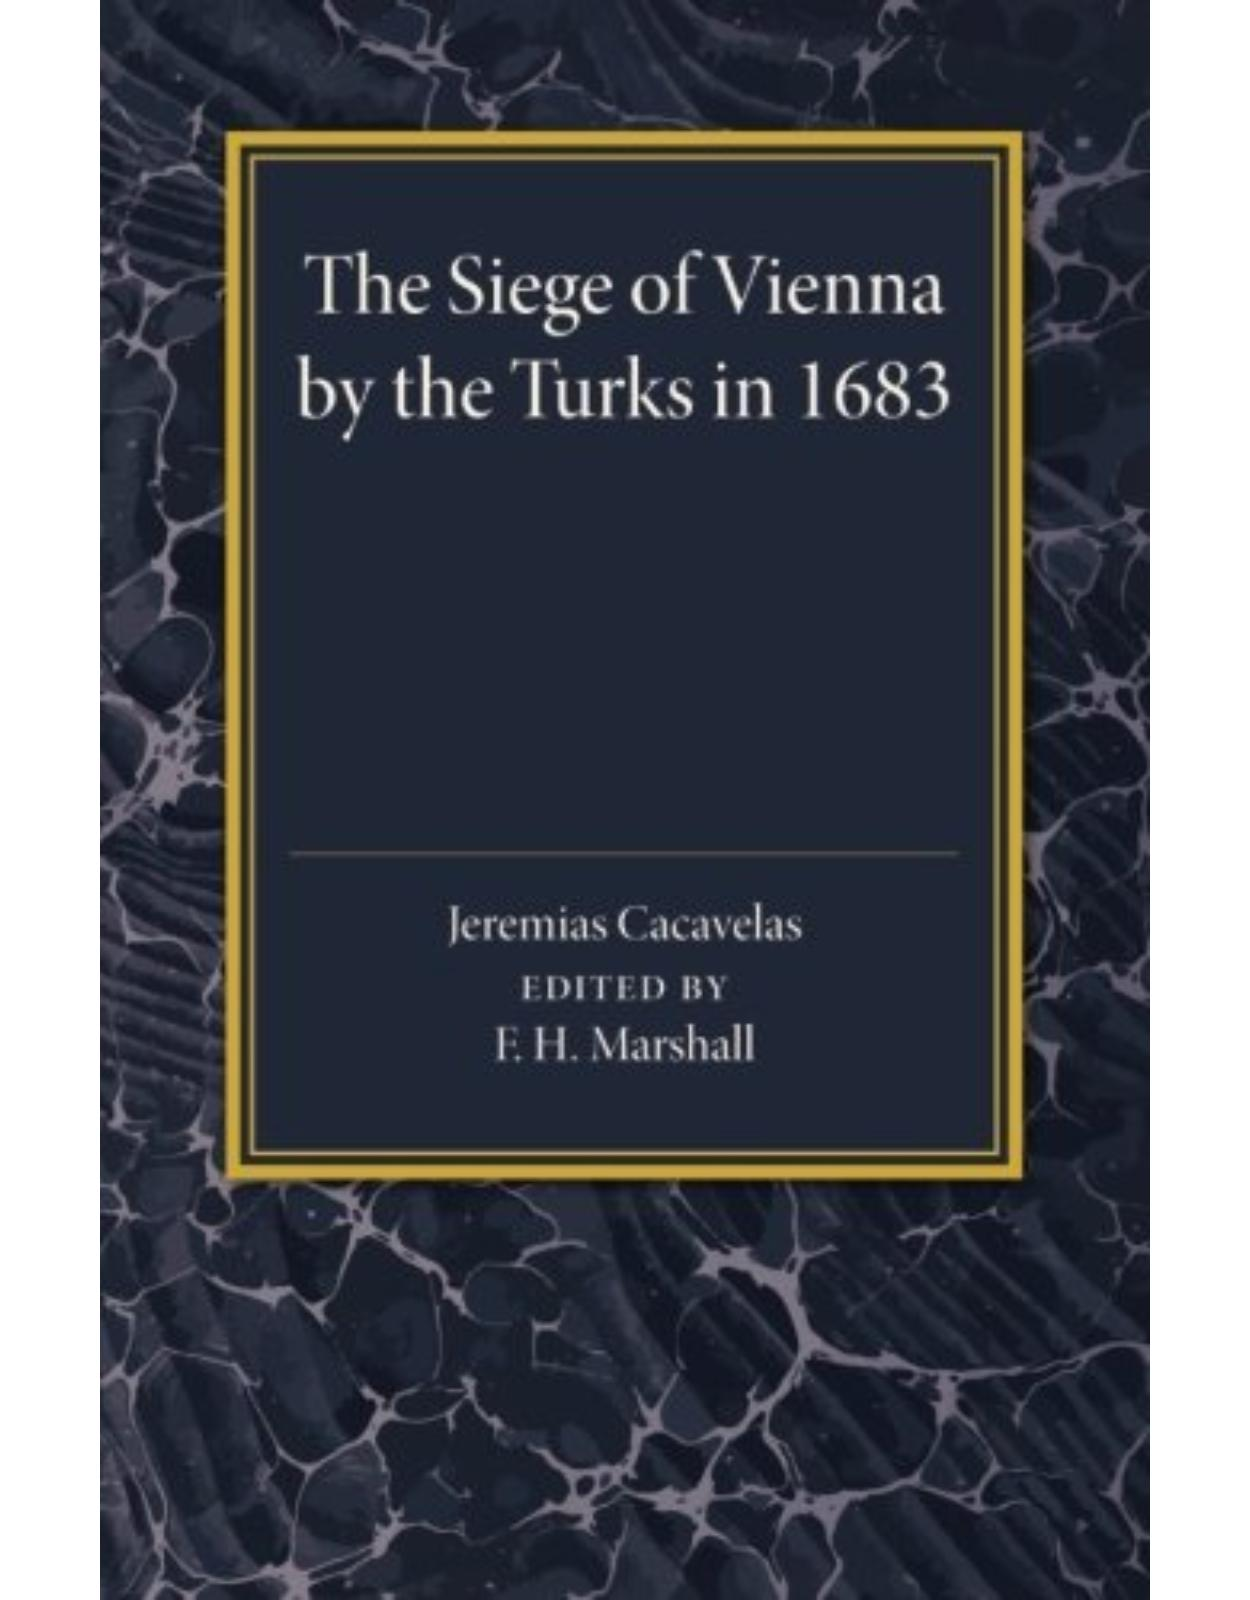 The Siege of Vienna by the Turks in 1683: Translated into Greek from an Italian Work Published Anonymously in the Year of the Siege